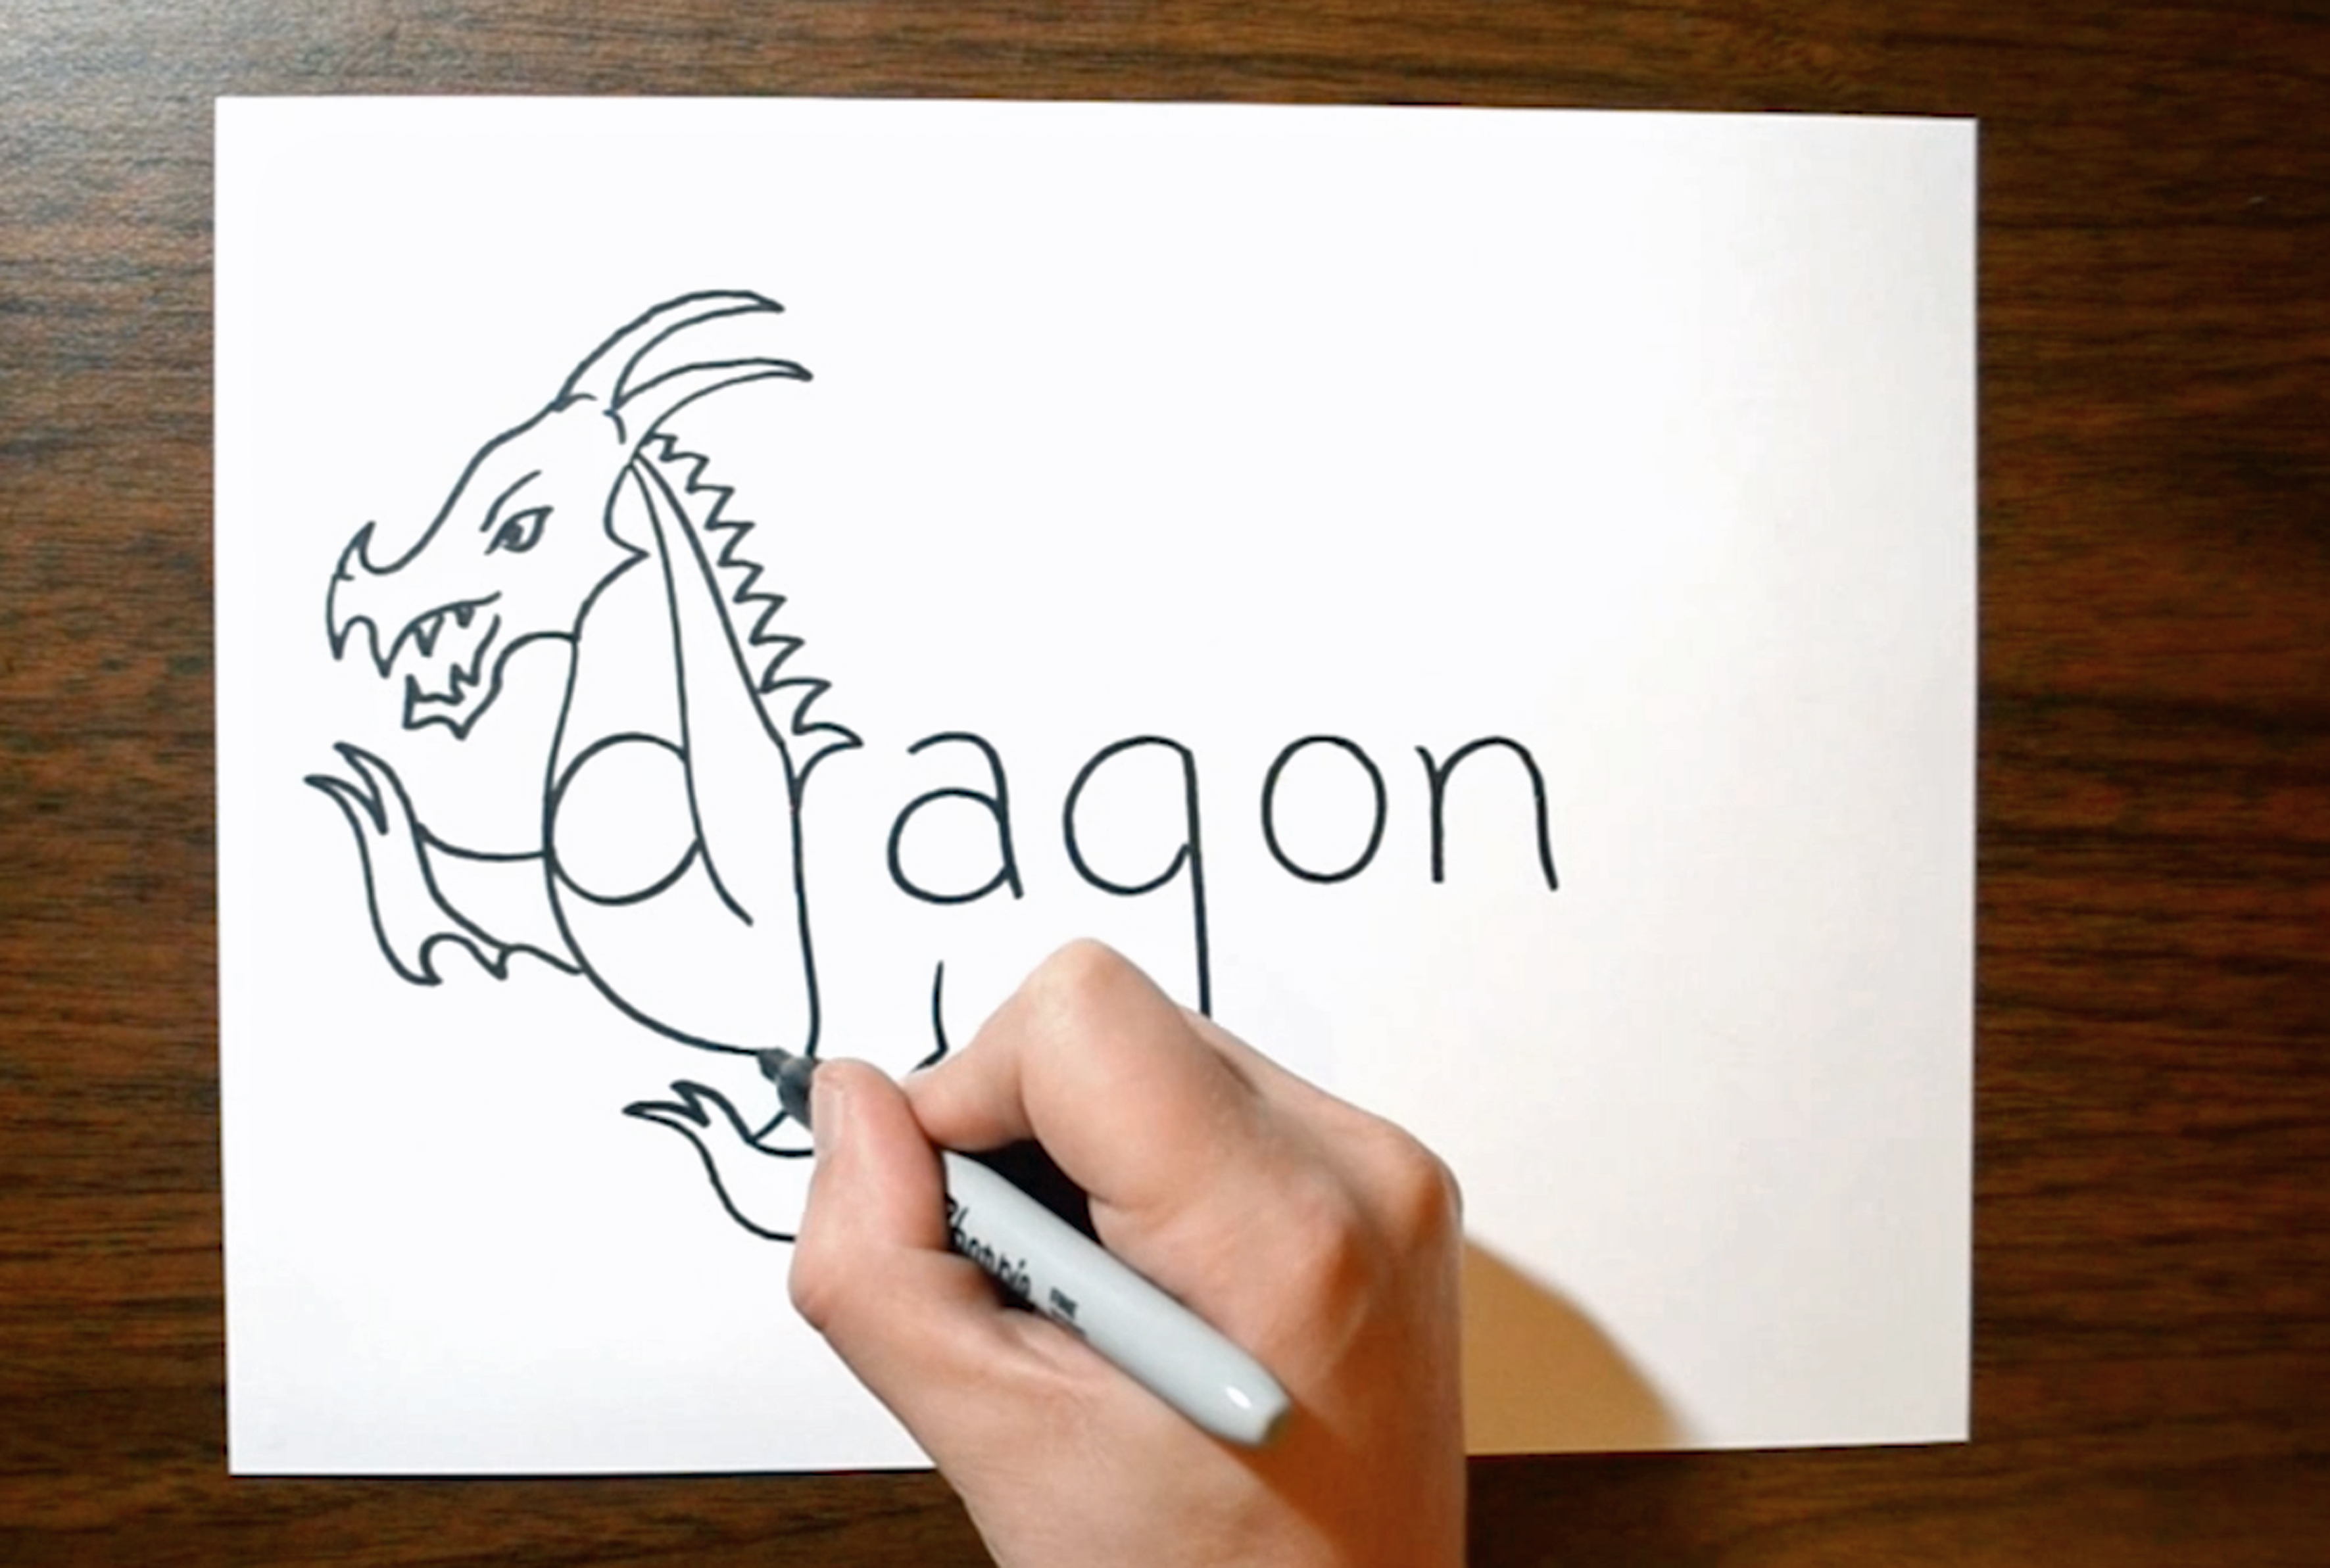 how to add drawings to word